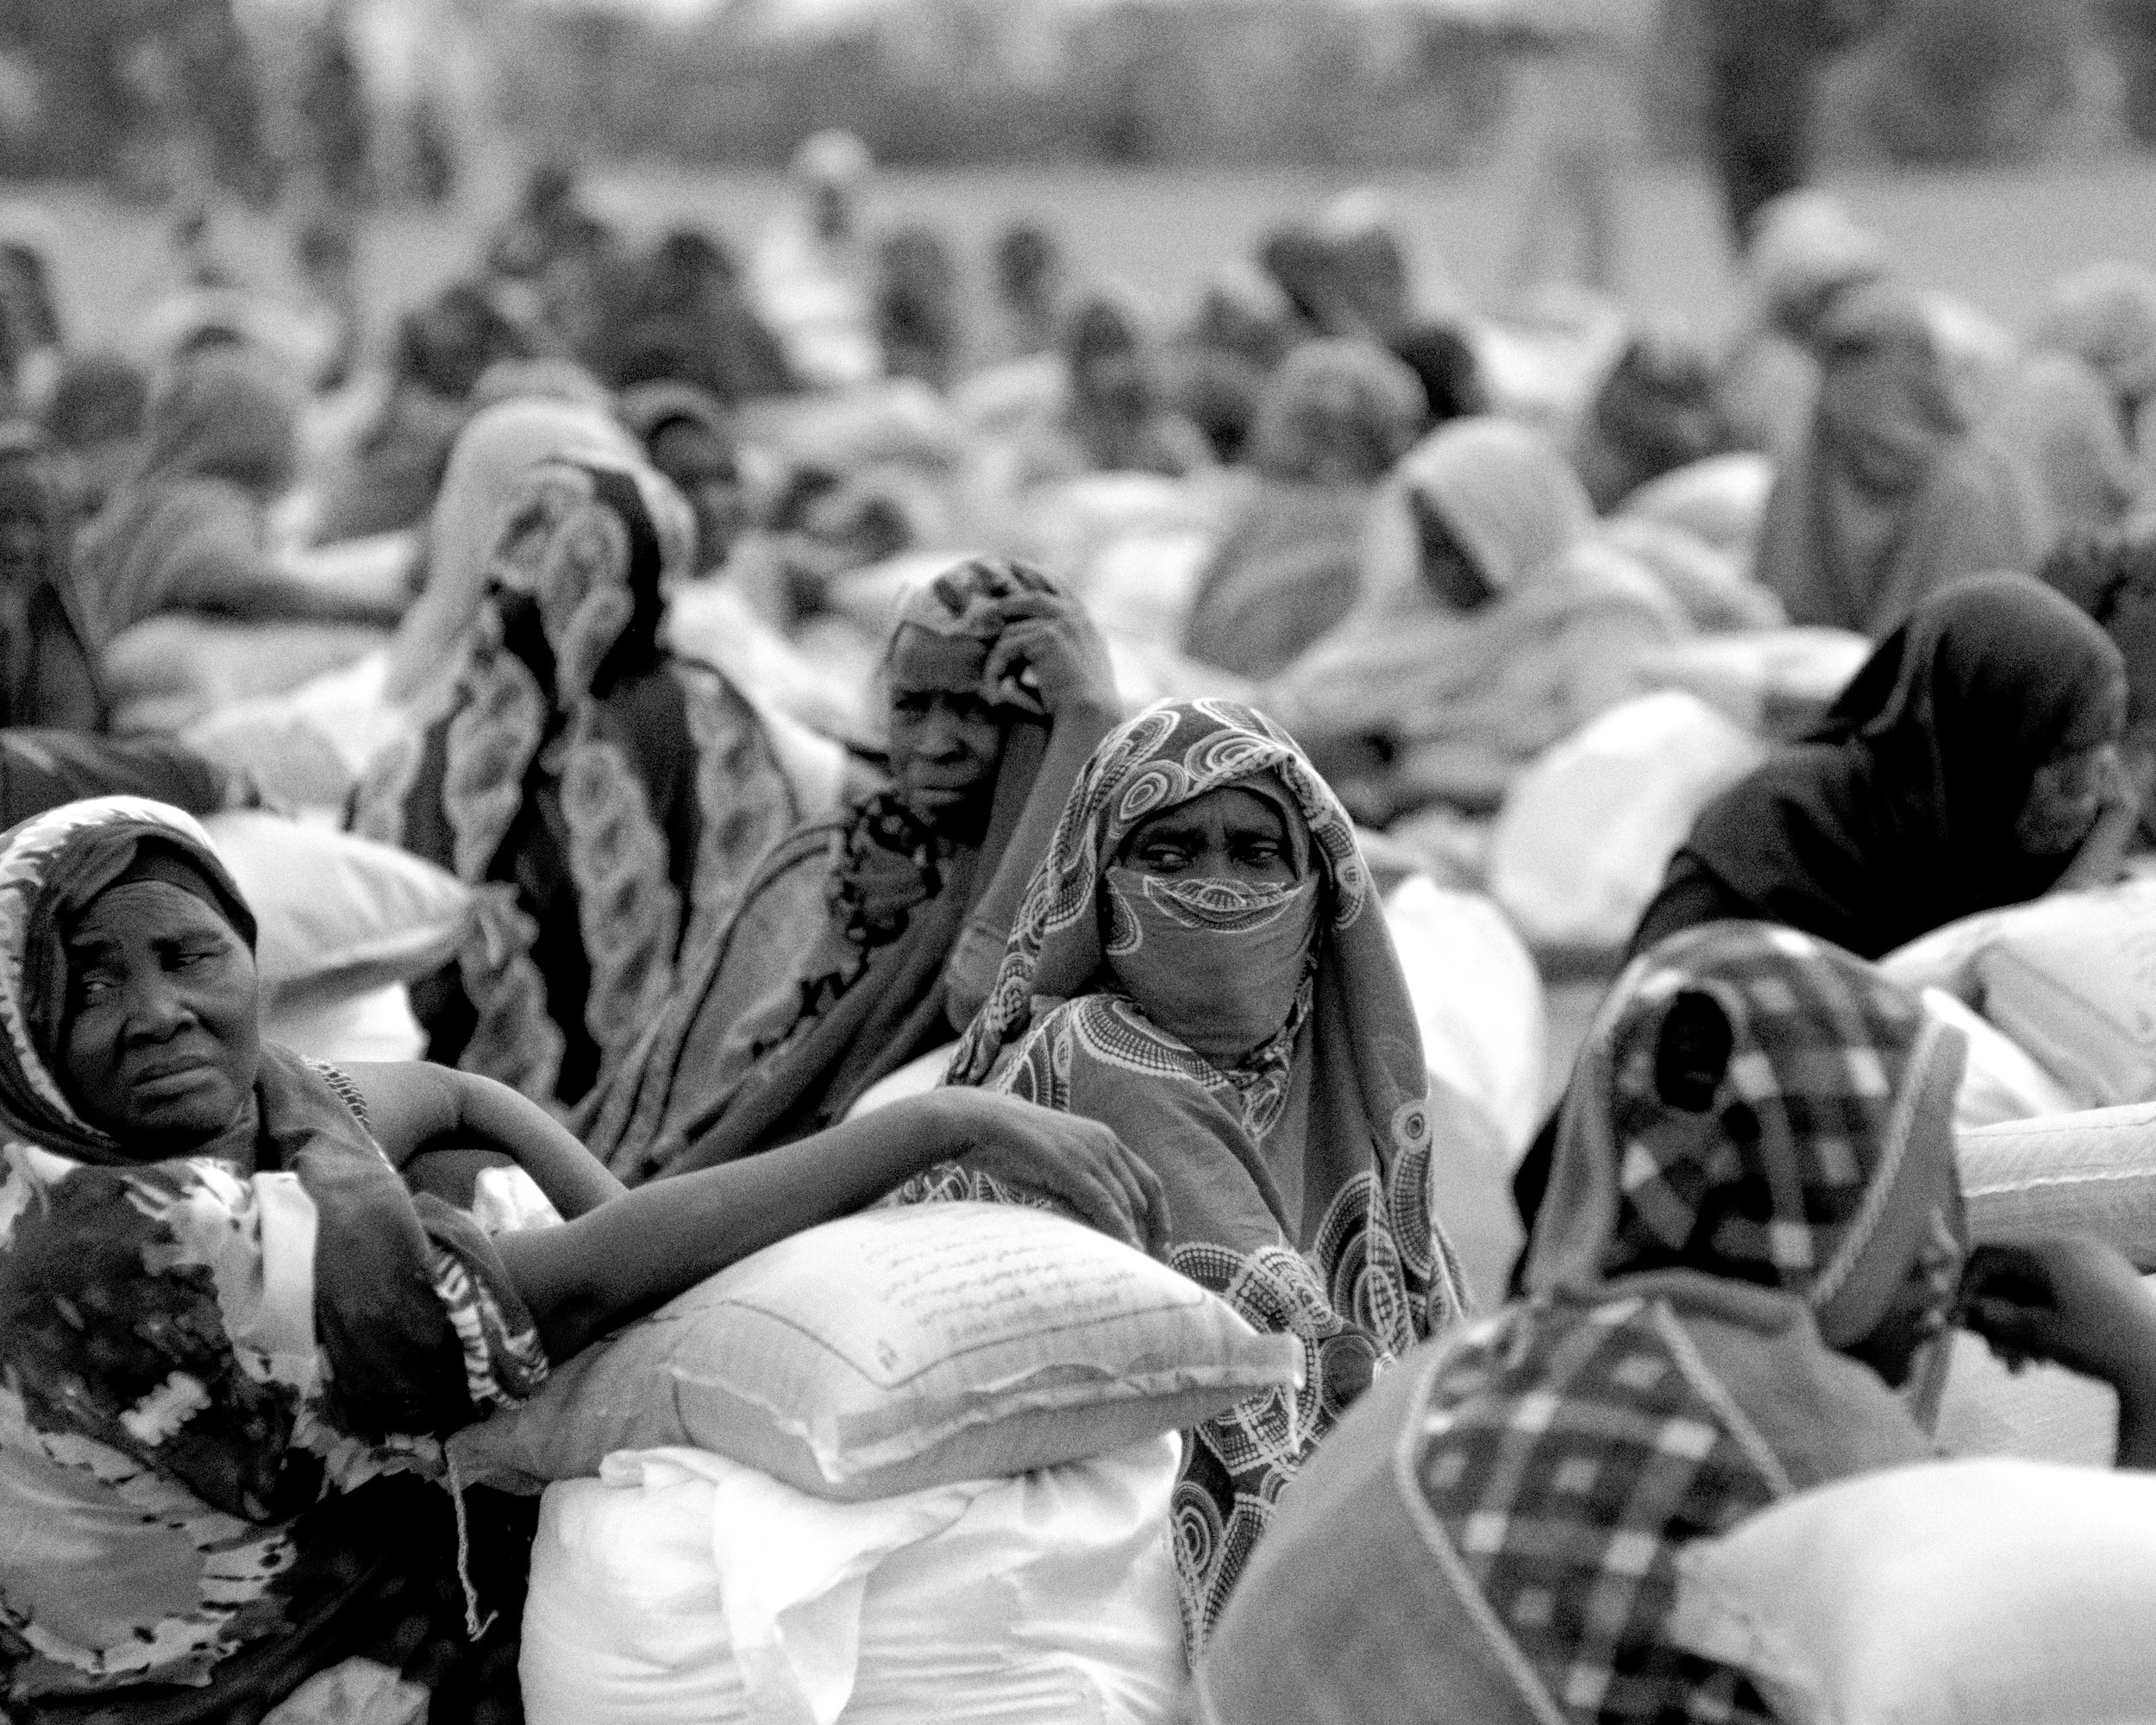 Women, displaced from war, wait to be able to leave with their food parcels in the Hotash refugee camps.